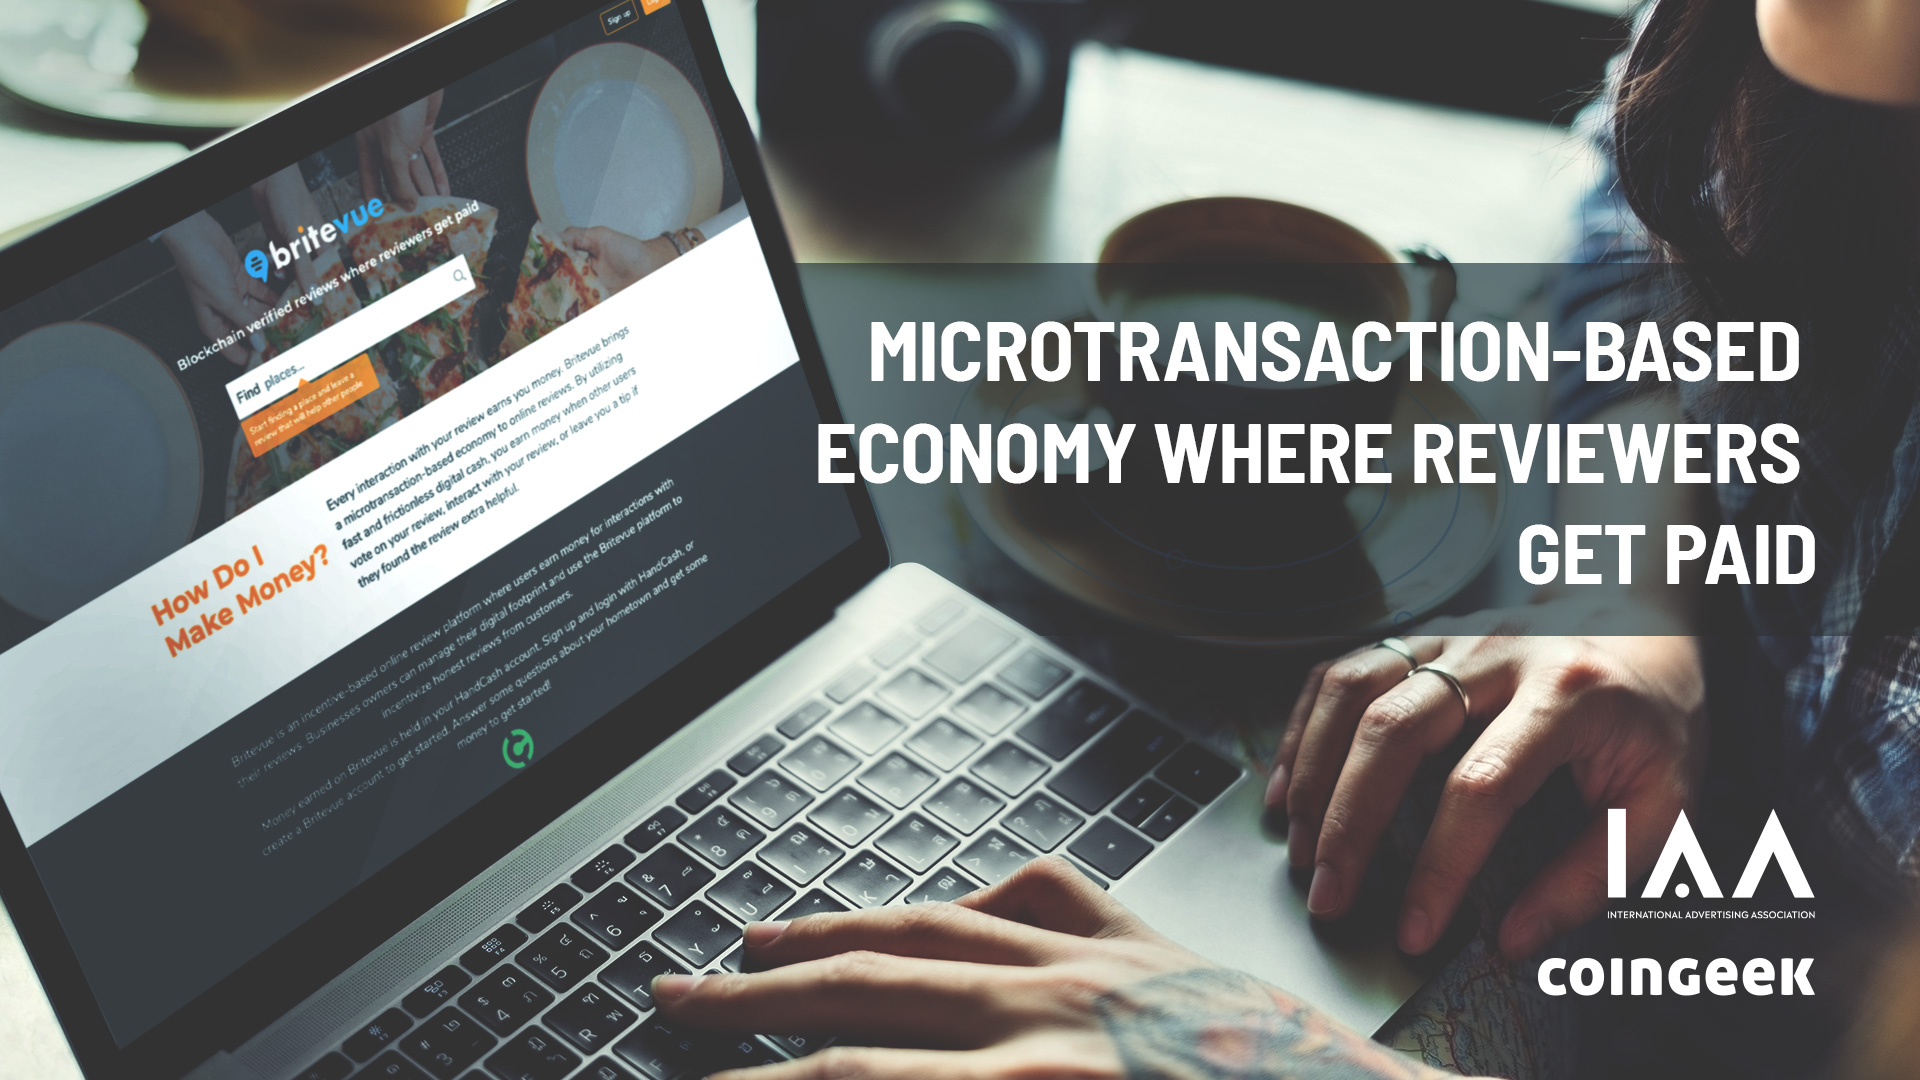 Microtransaction-based economy where reviewers get paid